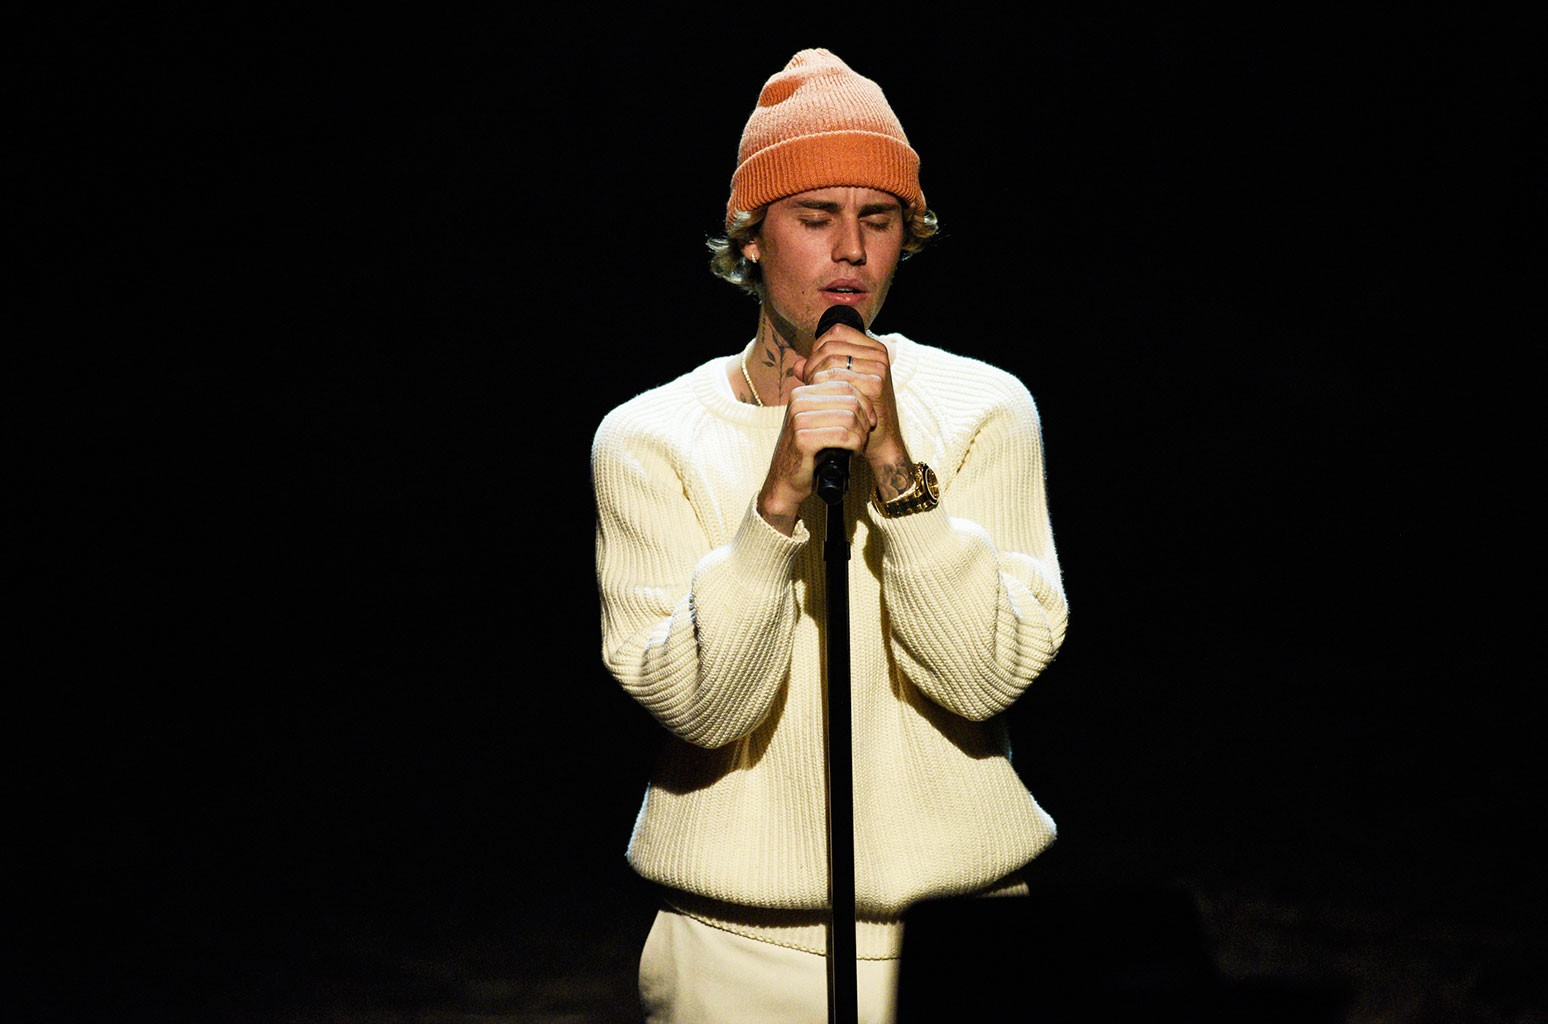 Justin Bieber Leaves Hillsong Church, Not Becoming A Minister